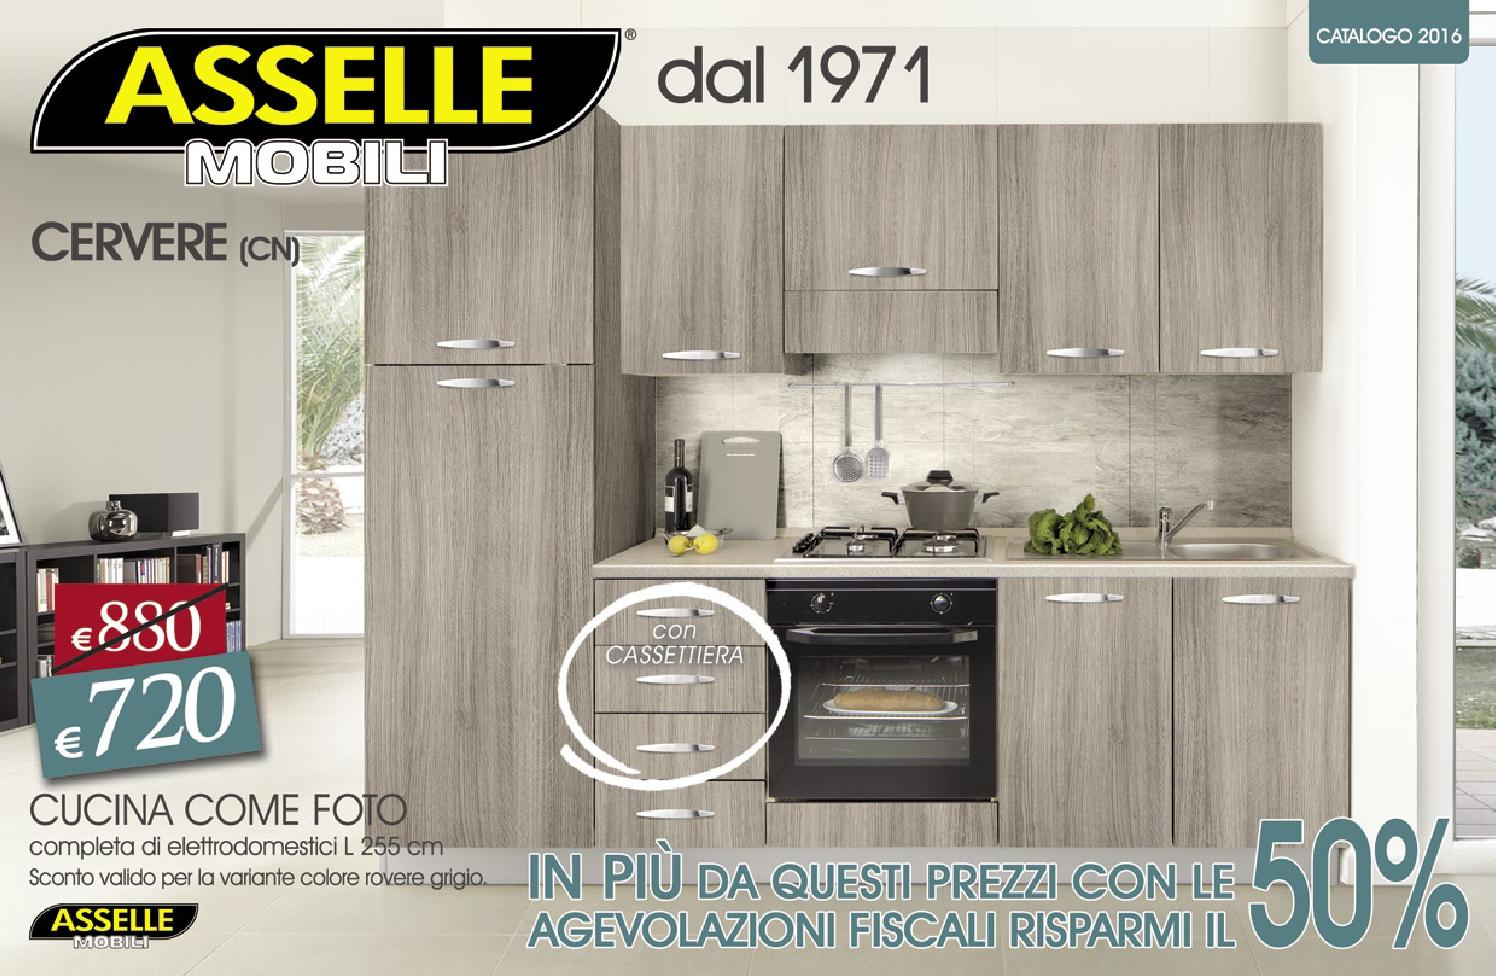 Asselle mobili catalogo 2016 by Asselle Mobili - issuu